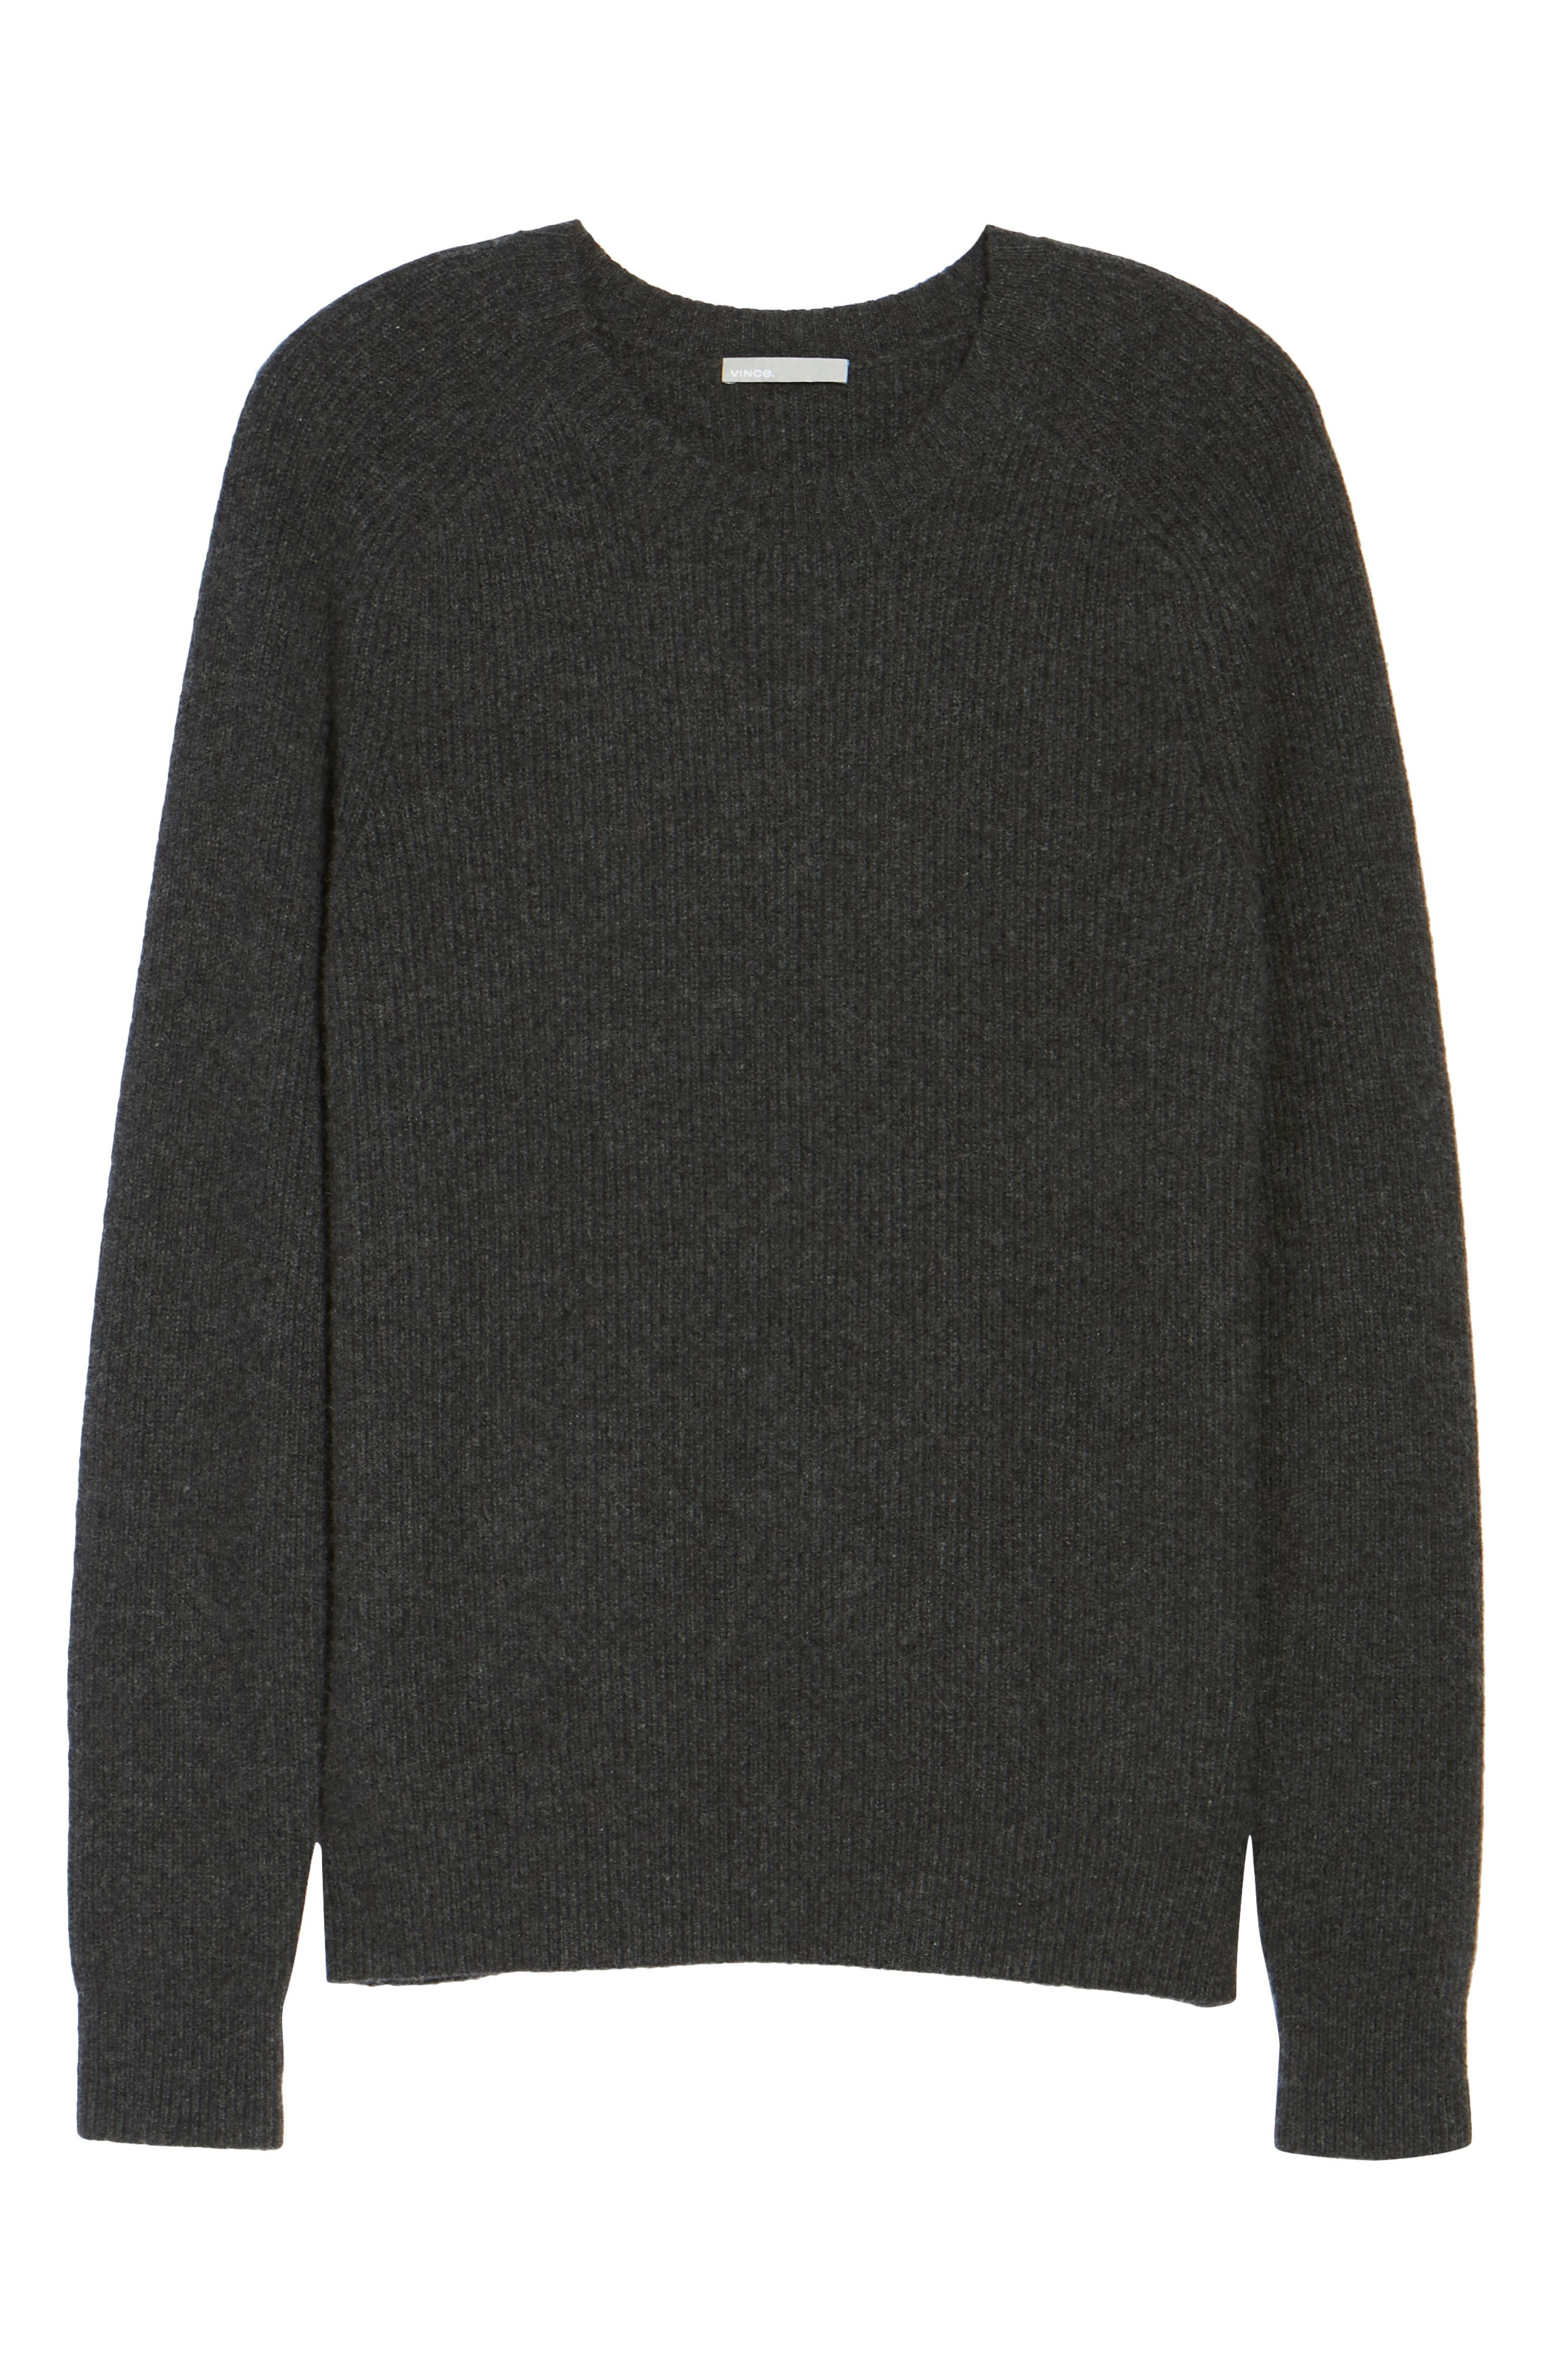 Ribbed Wool & Cashmere Raglan Sweater,                             Alternate thumbnail 6, color,                             064